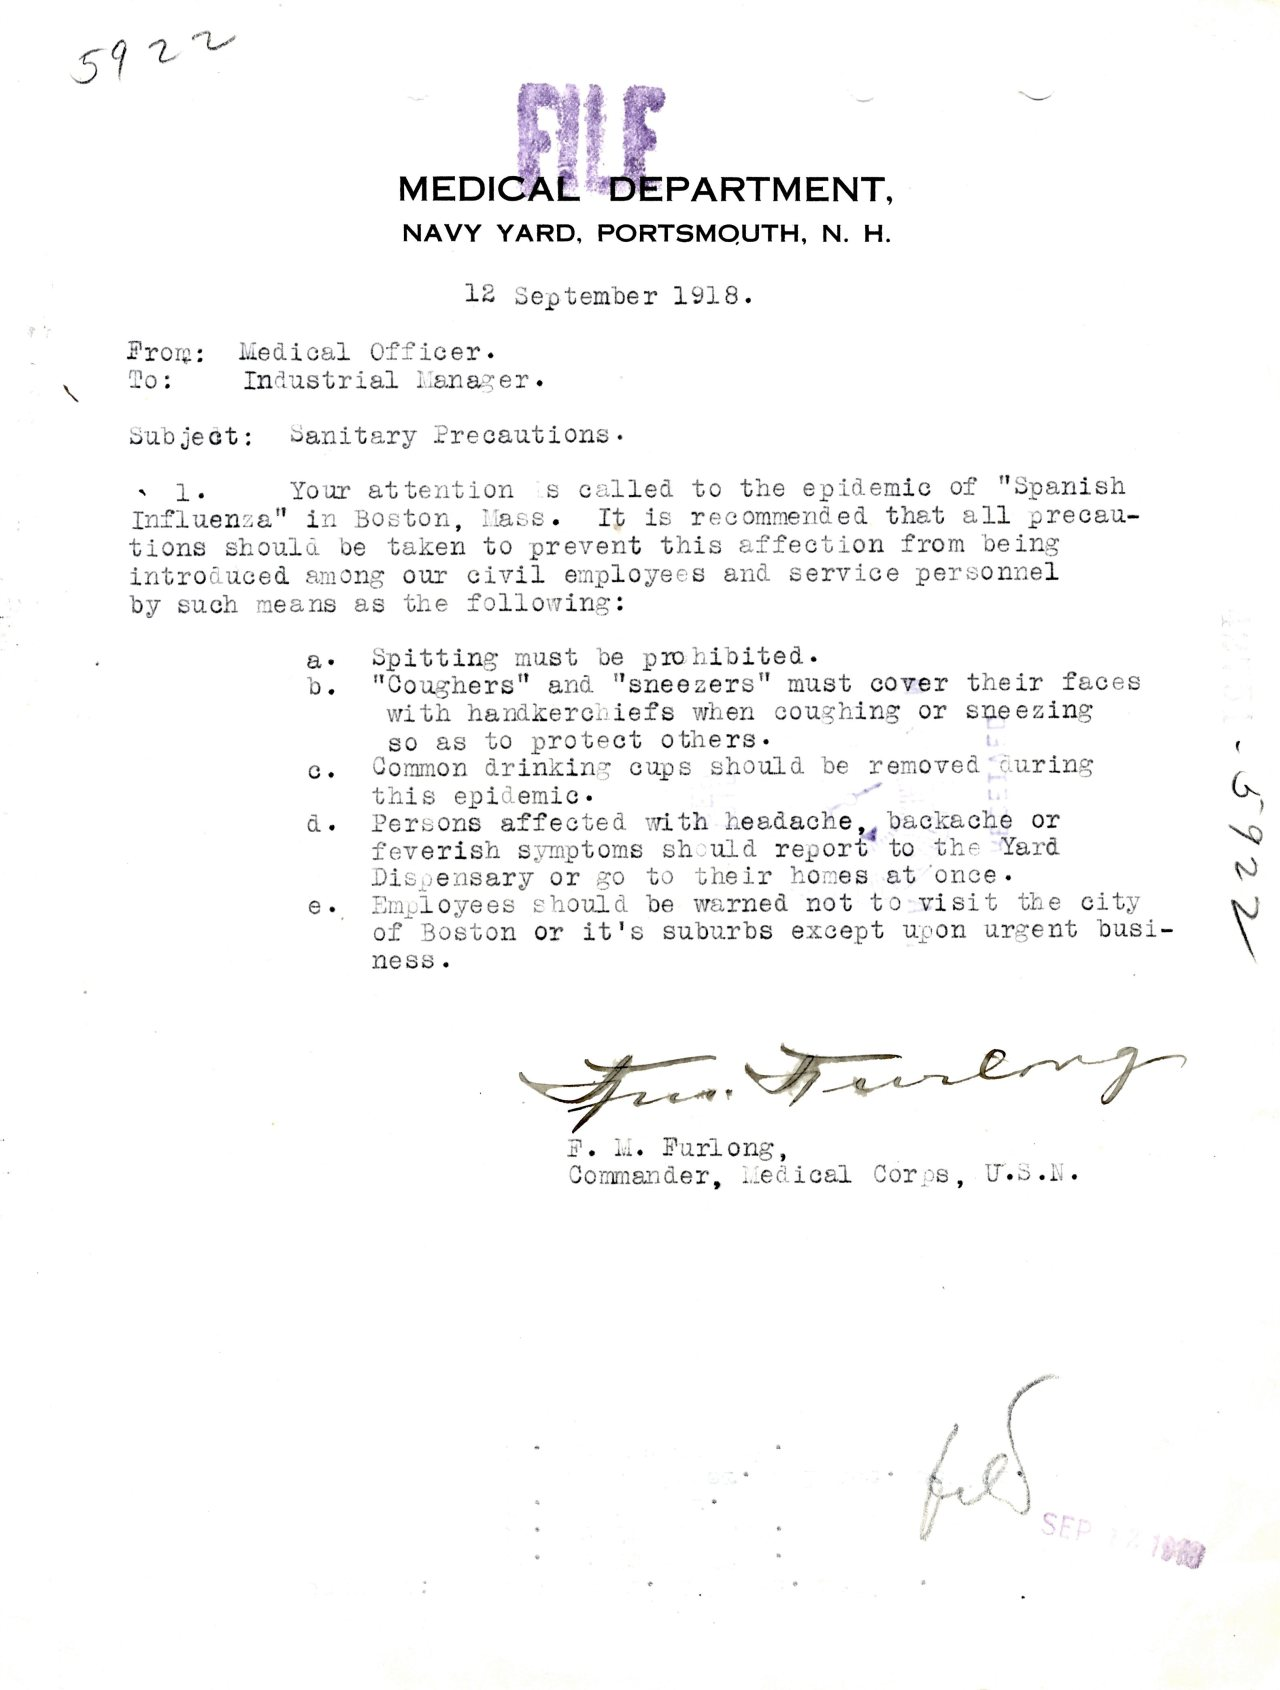 Memorandum Regarding Sanitary Precautions, 09/12/1918From the General Correspondence file of the Portsmouth Navy Yard         The 1918 Influenza Epidemic would kill more than World War I, and more than any other illness.  More at The Deadly Virus: The Influenza Epidemic of 1918